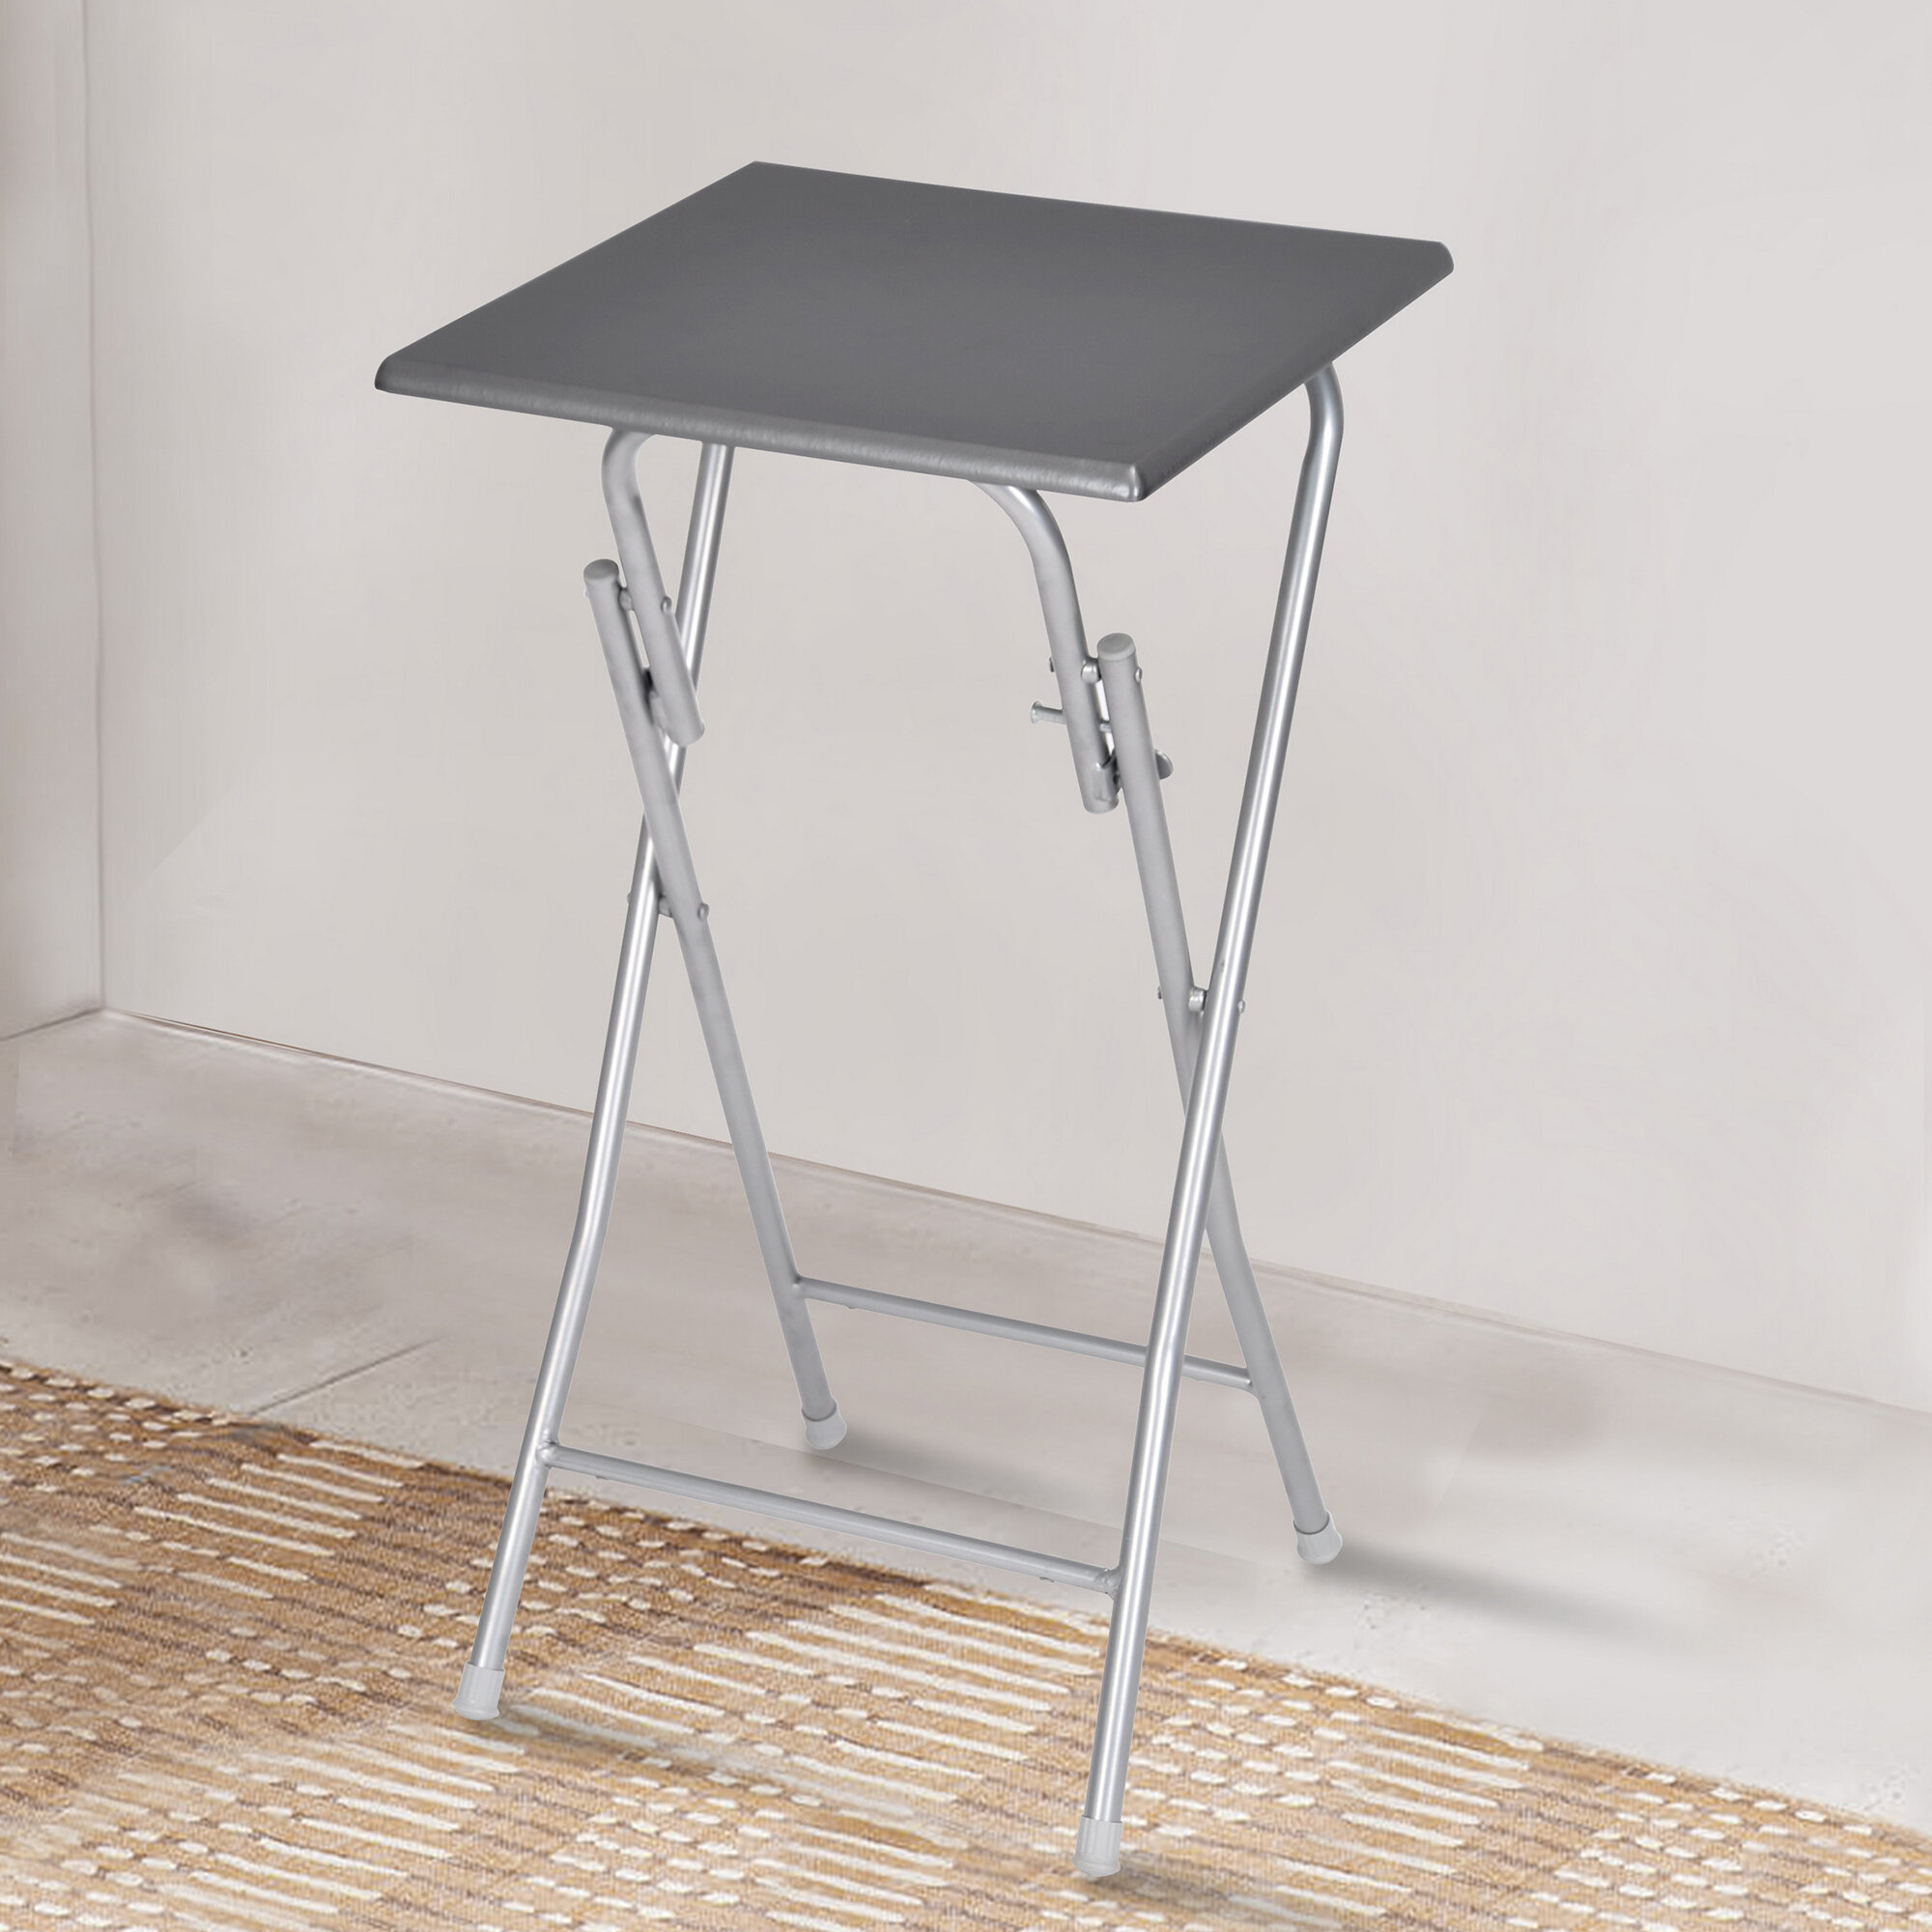 Admirable 36 Inch High Folding Table Wayfair Download Free Architecture Designs Intelgarnamadebymaigaardcom